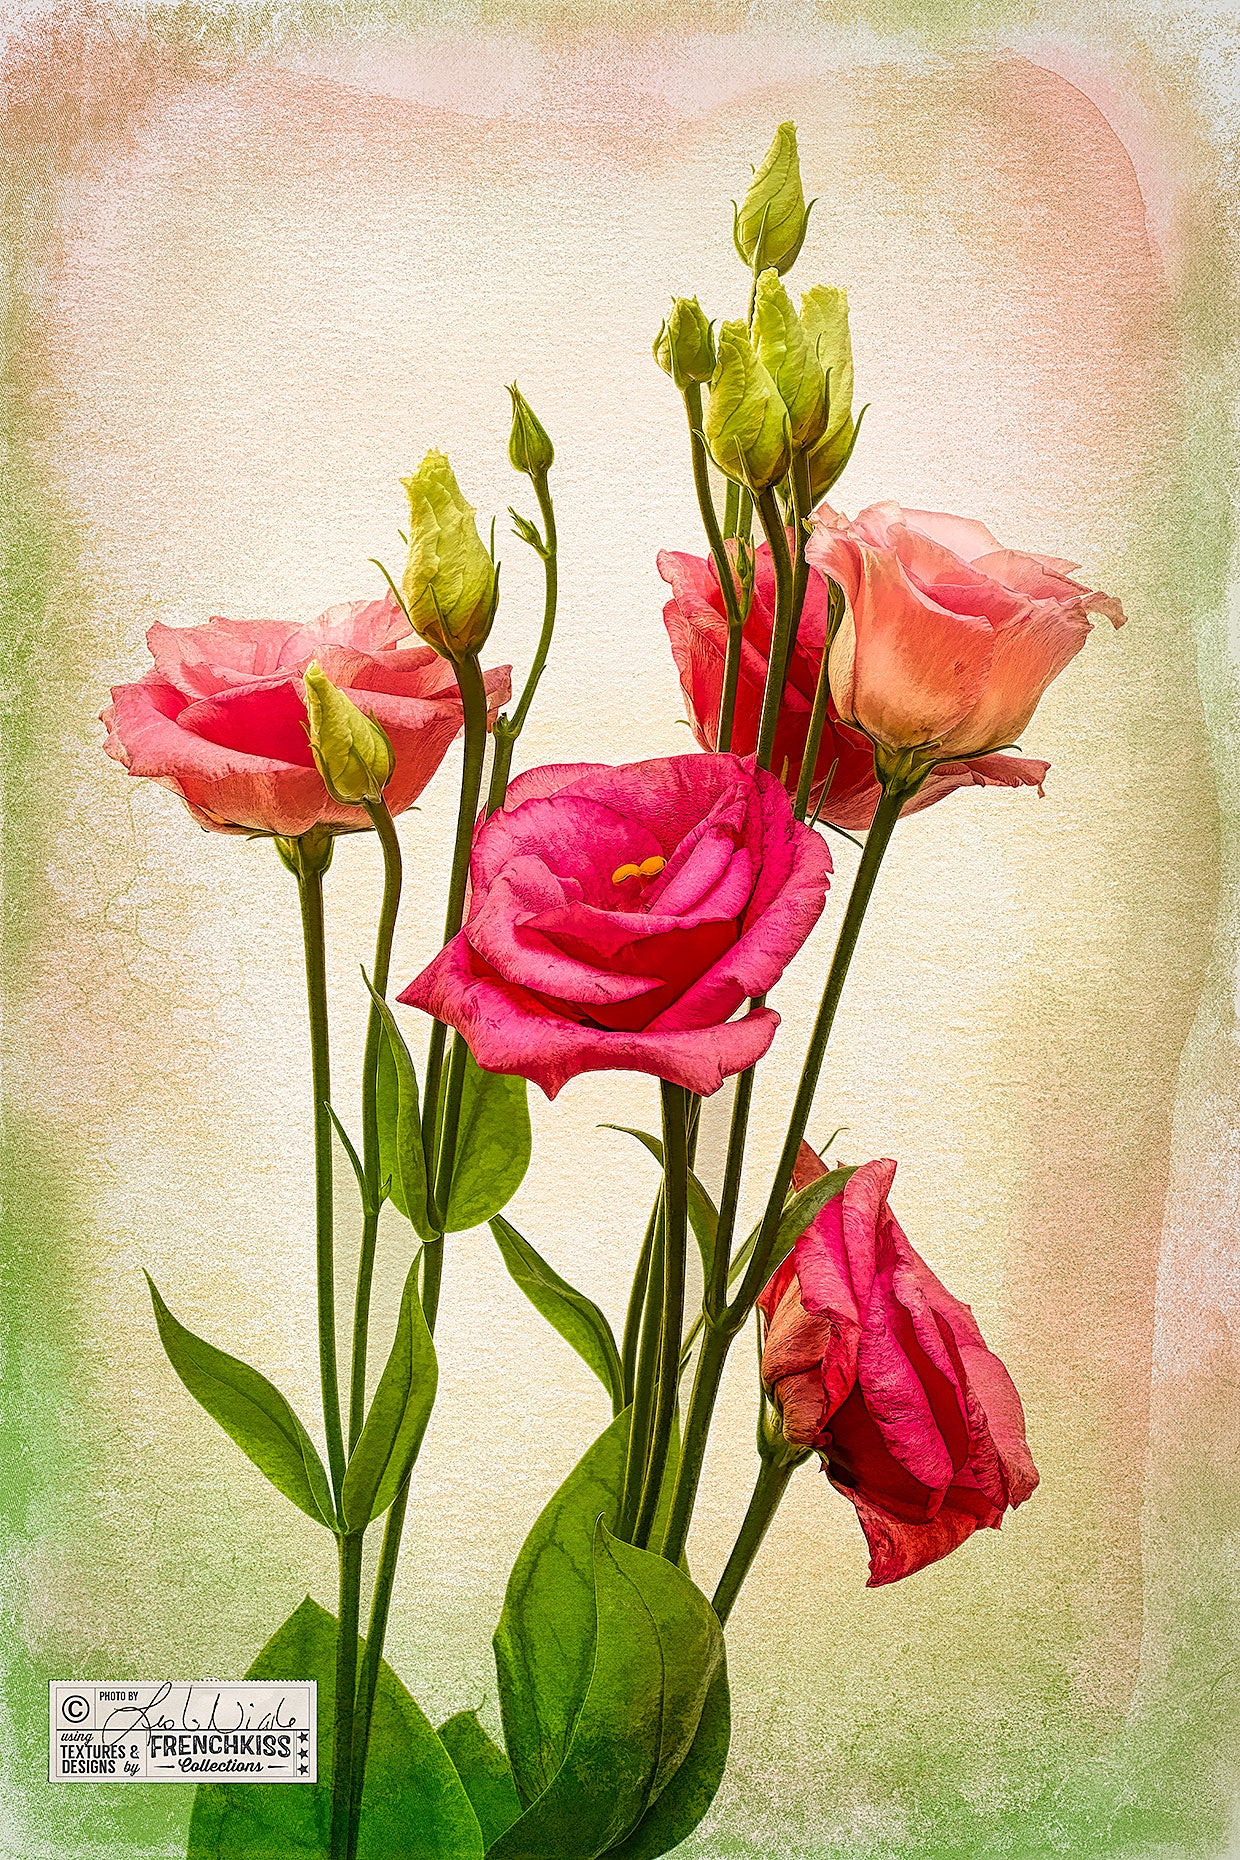 Lisianthus flowers photograph with textures and Topaz Labs filters for an artistic look.